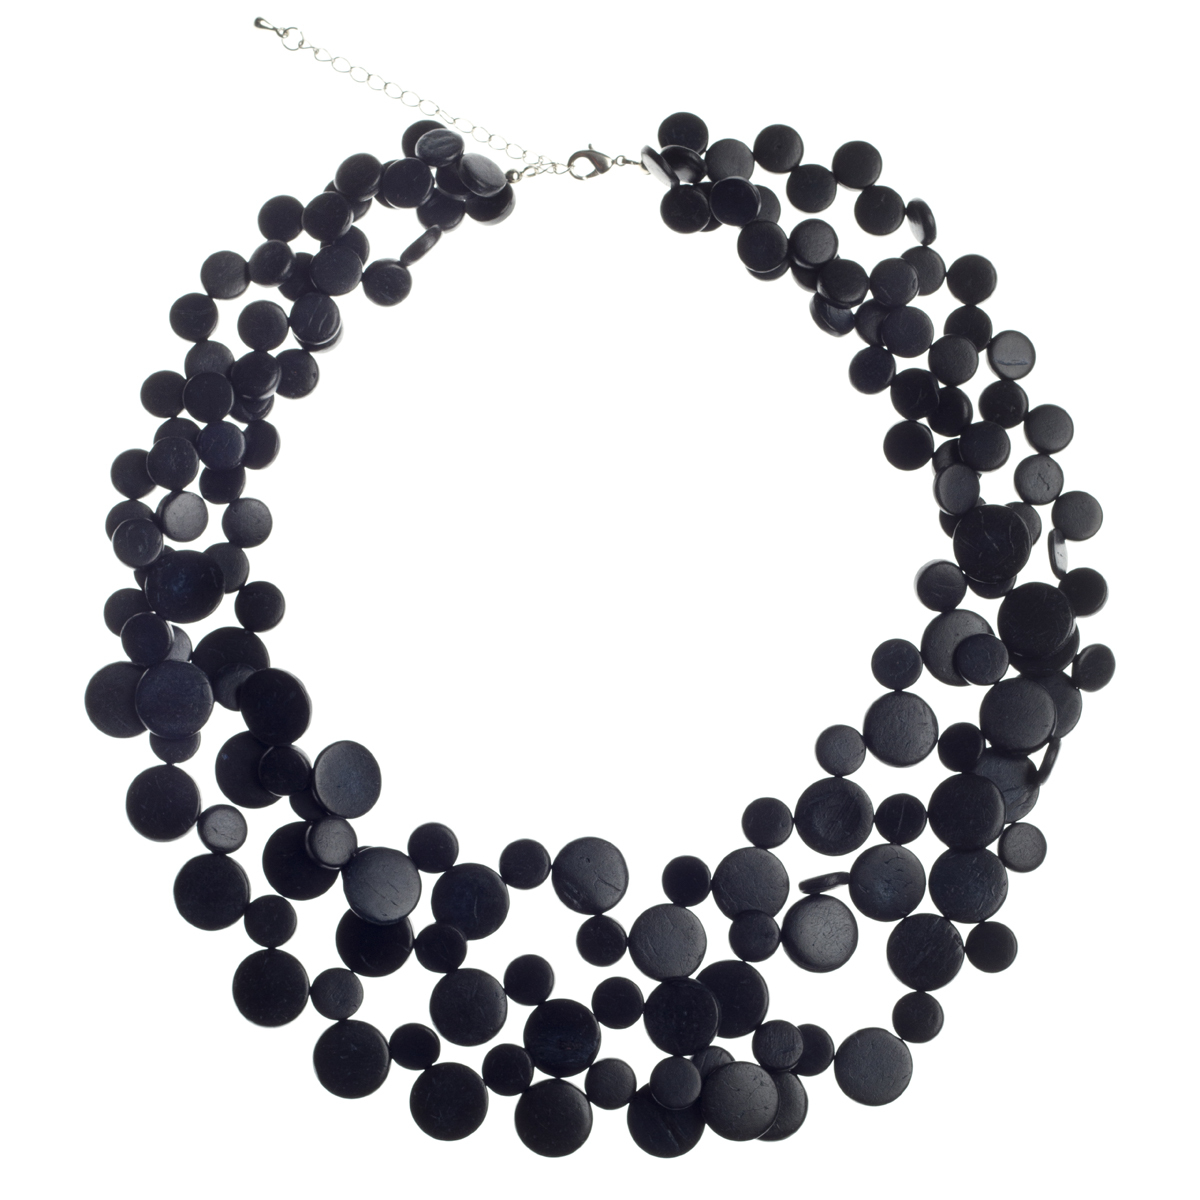 Black Smarties 3 Strand Necklace by Cool Coconut